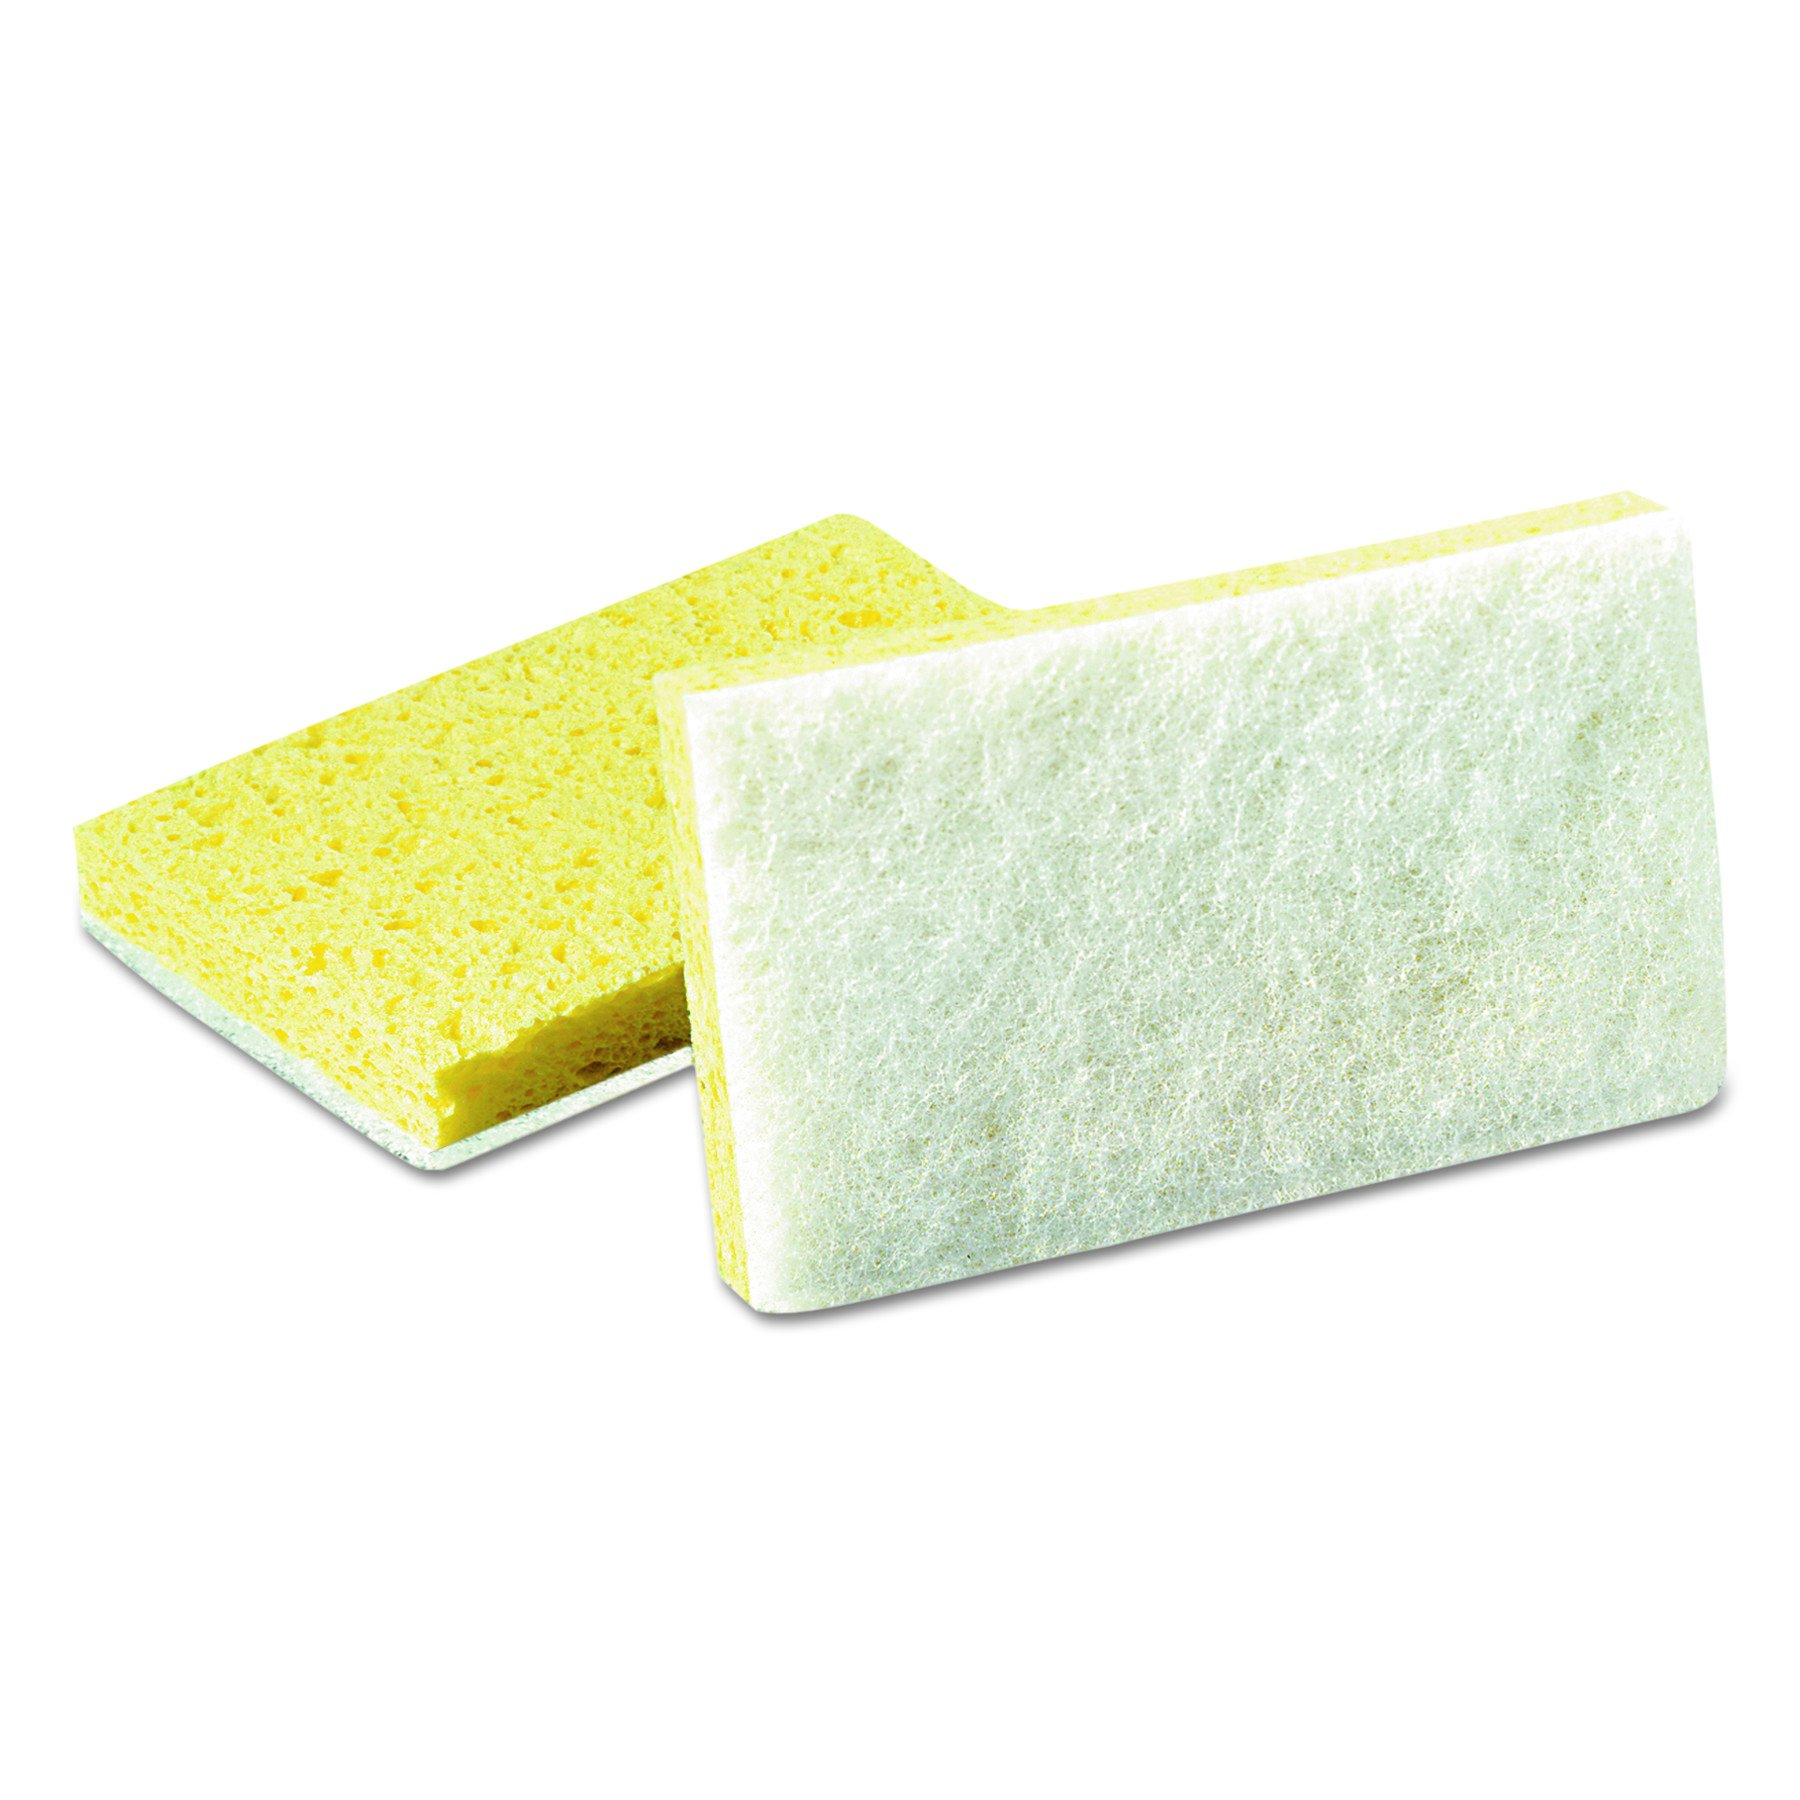 Scotch-Brite PROFESSIONAL 08251 Light-Duty Scrubbing Sponge, 63, 3 1/2 x 5 5/8, Yellow/White (Case of 20)